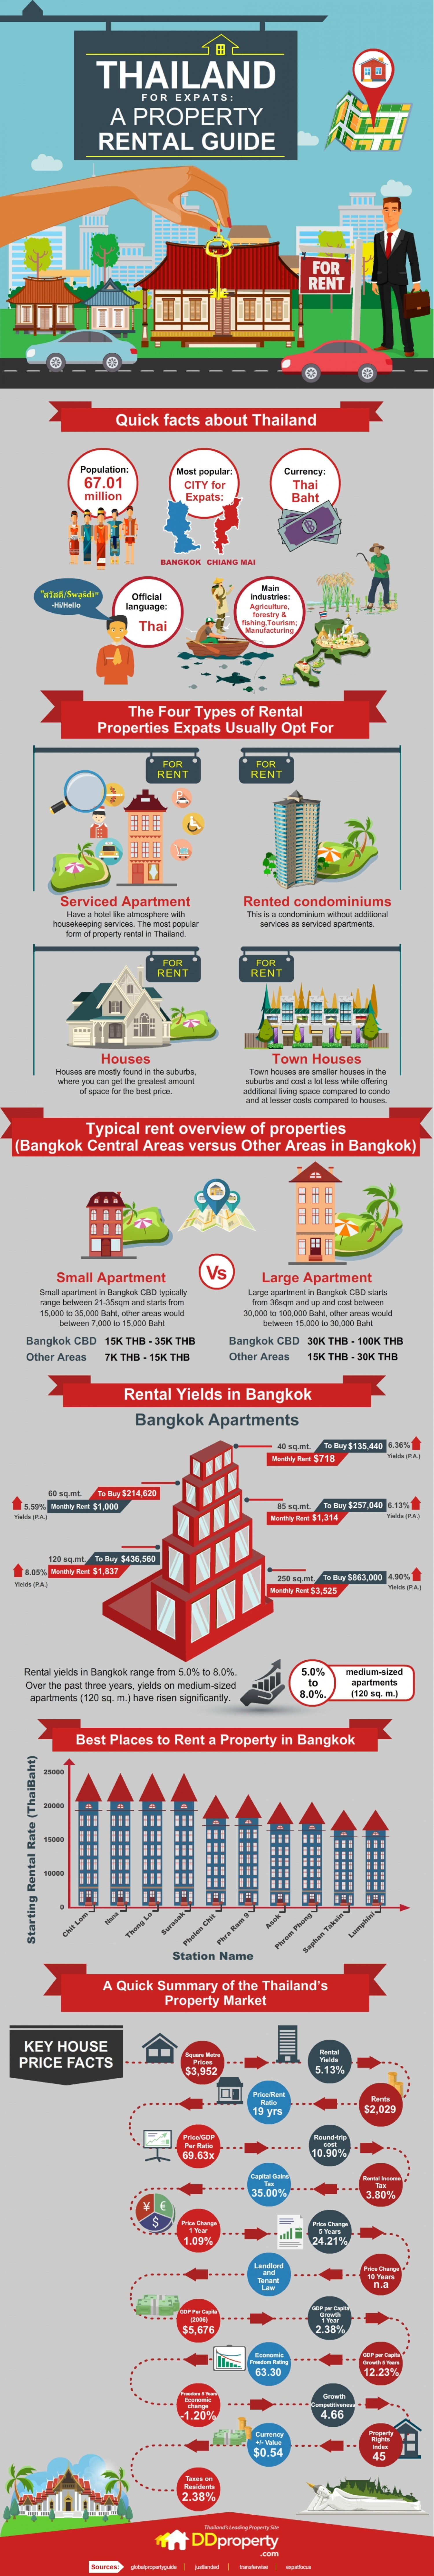 Thailand for Expats: A Property Rental Guide Infographic